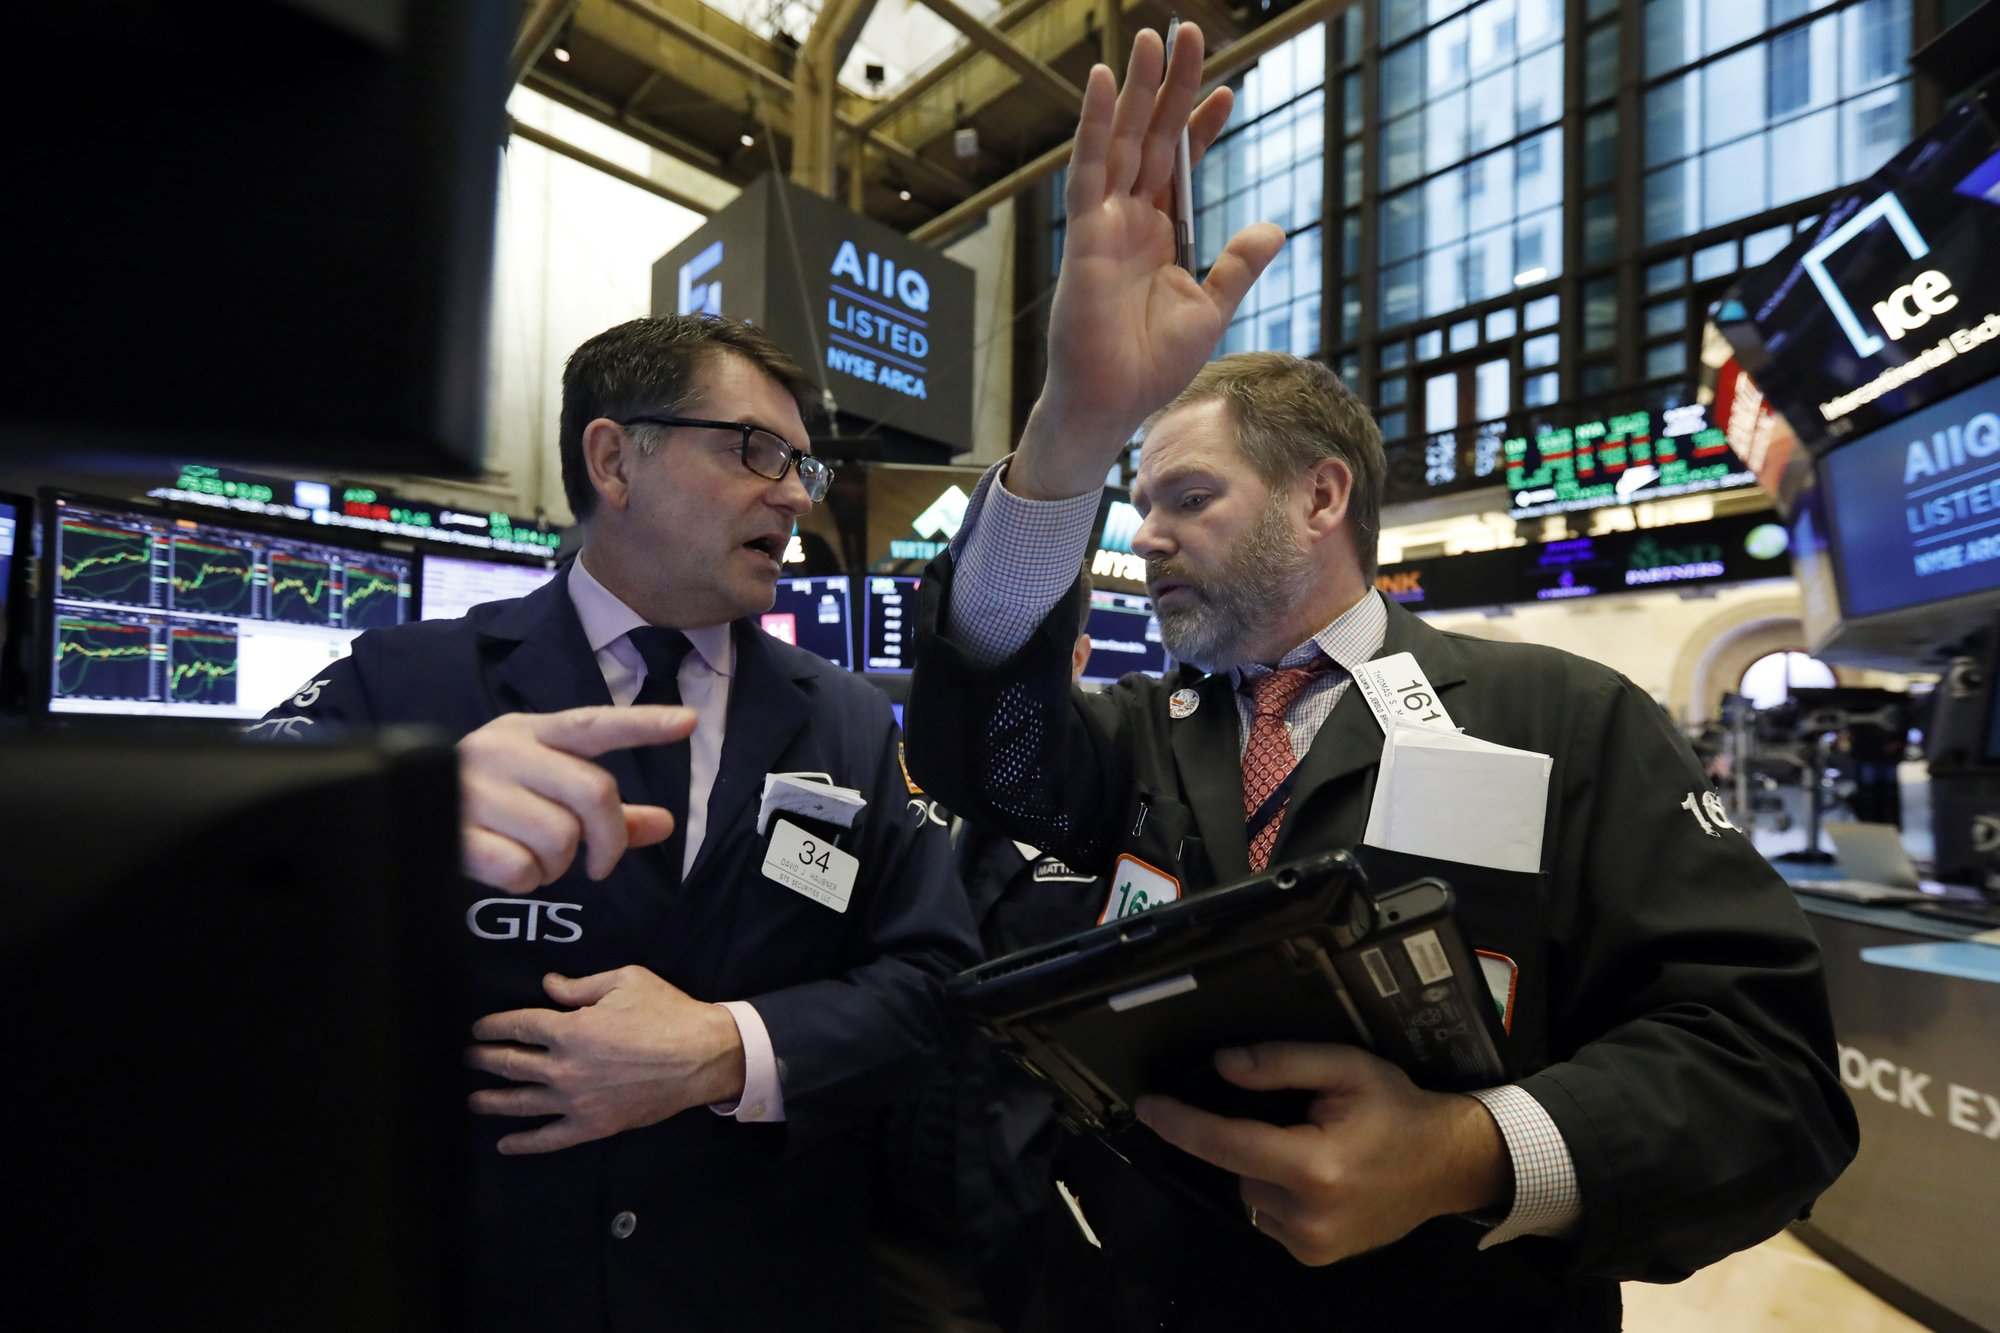 Luxury retailers, technology companies push stocks higher